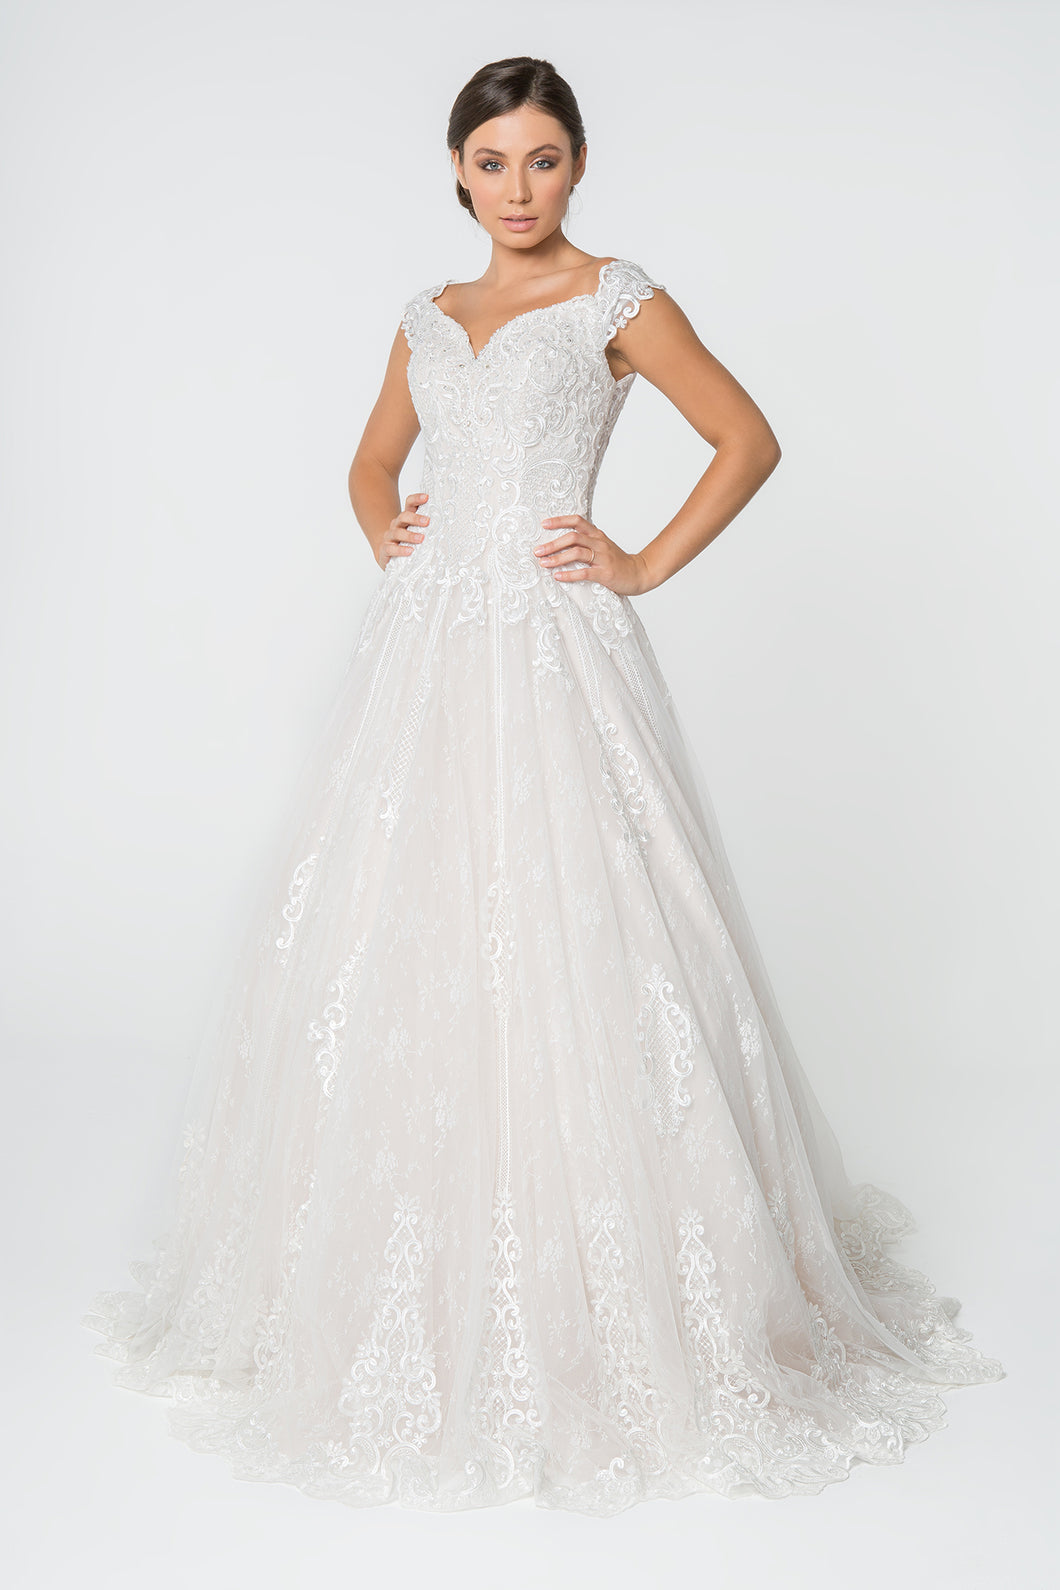 Poppy Ivory Wedding Dress Off Shoulder Lace Skirt Bridal Gown G2823HER-Ivory SAMPLE IN STORE